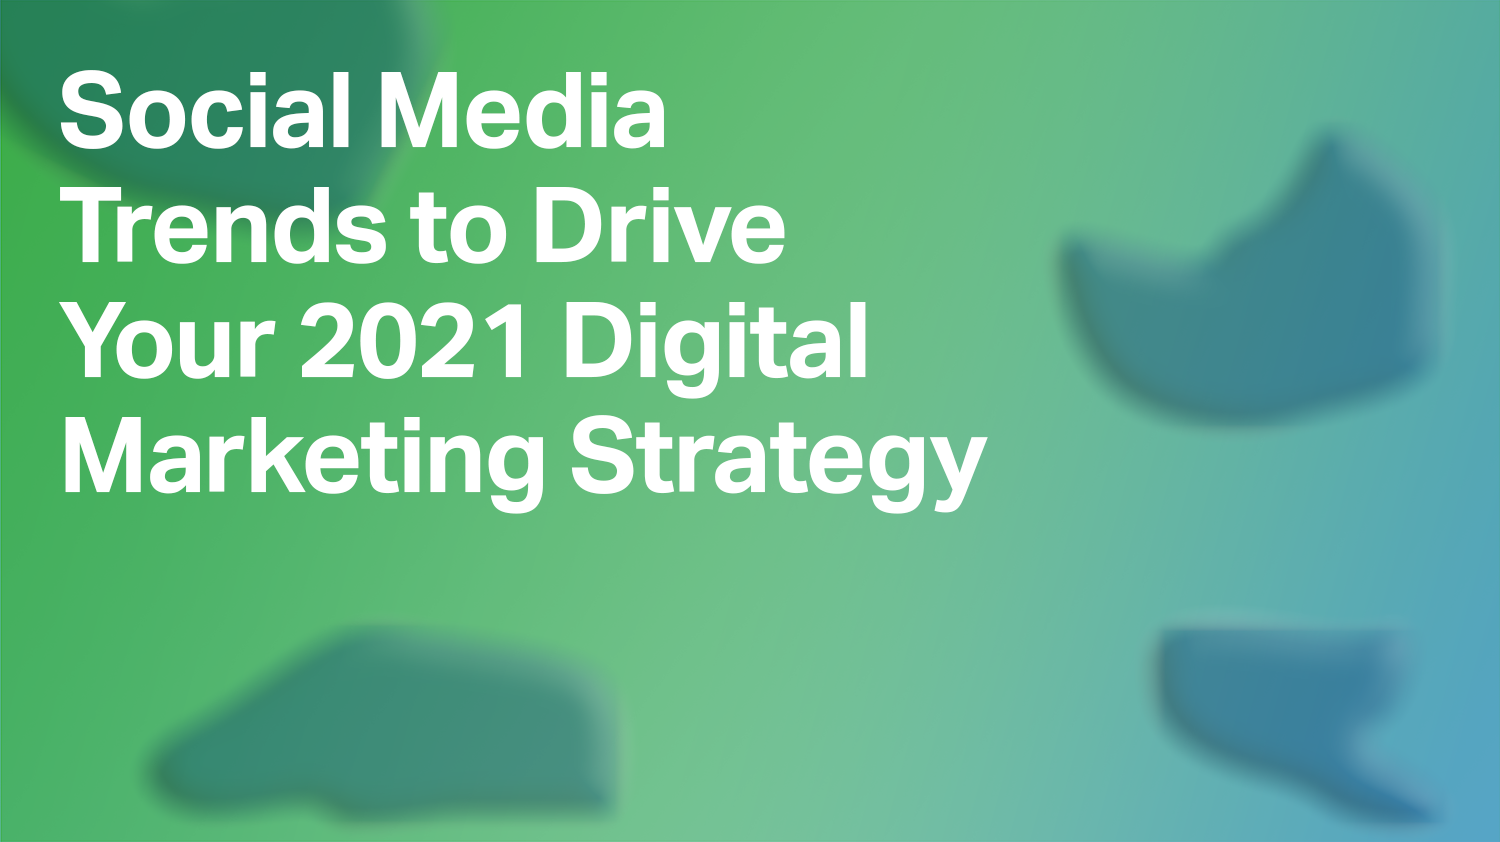 Social Media Trends to Drive Your 2021 Digital Marketing Strategy